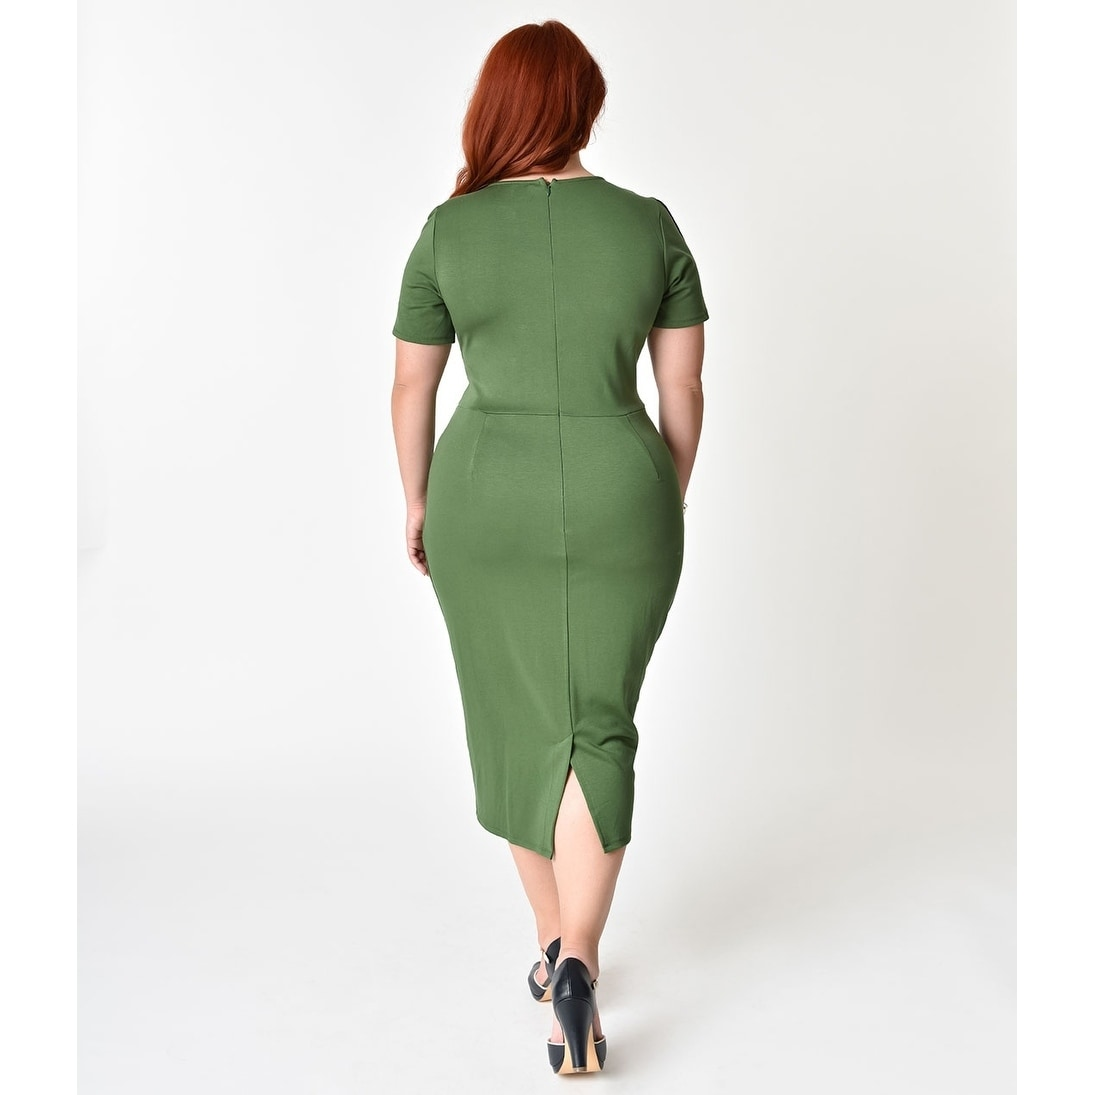 0d357dd64f Shop Unique Vintage Matcha Green Stretch Mod Wiggle Dress - Free Shipping  Today - Overstock - 21107338